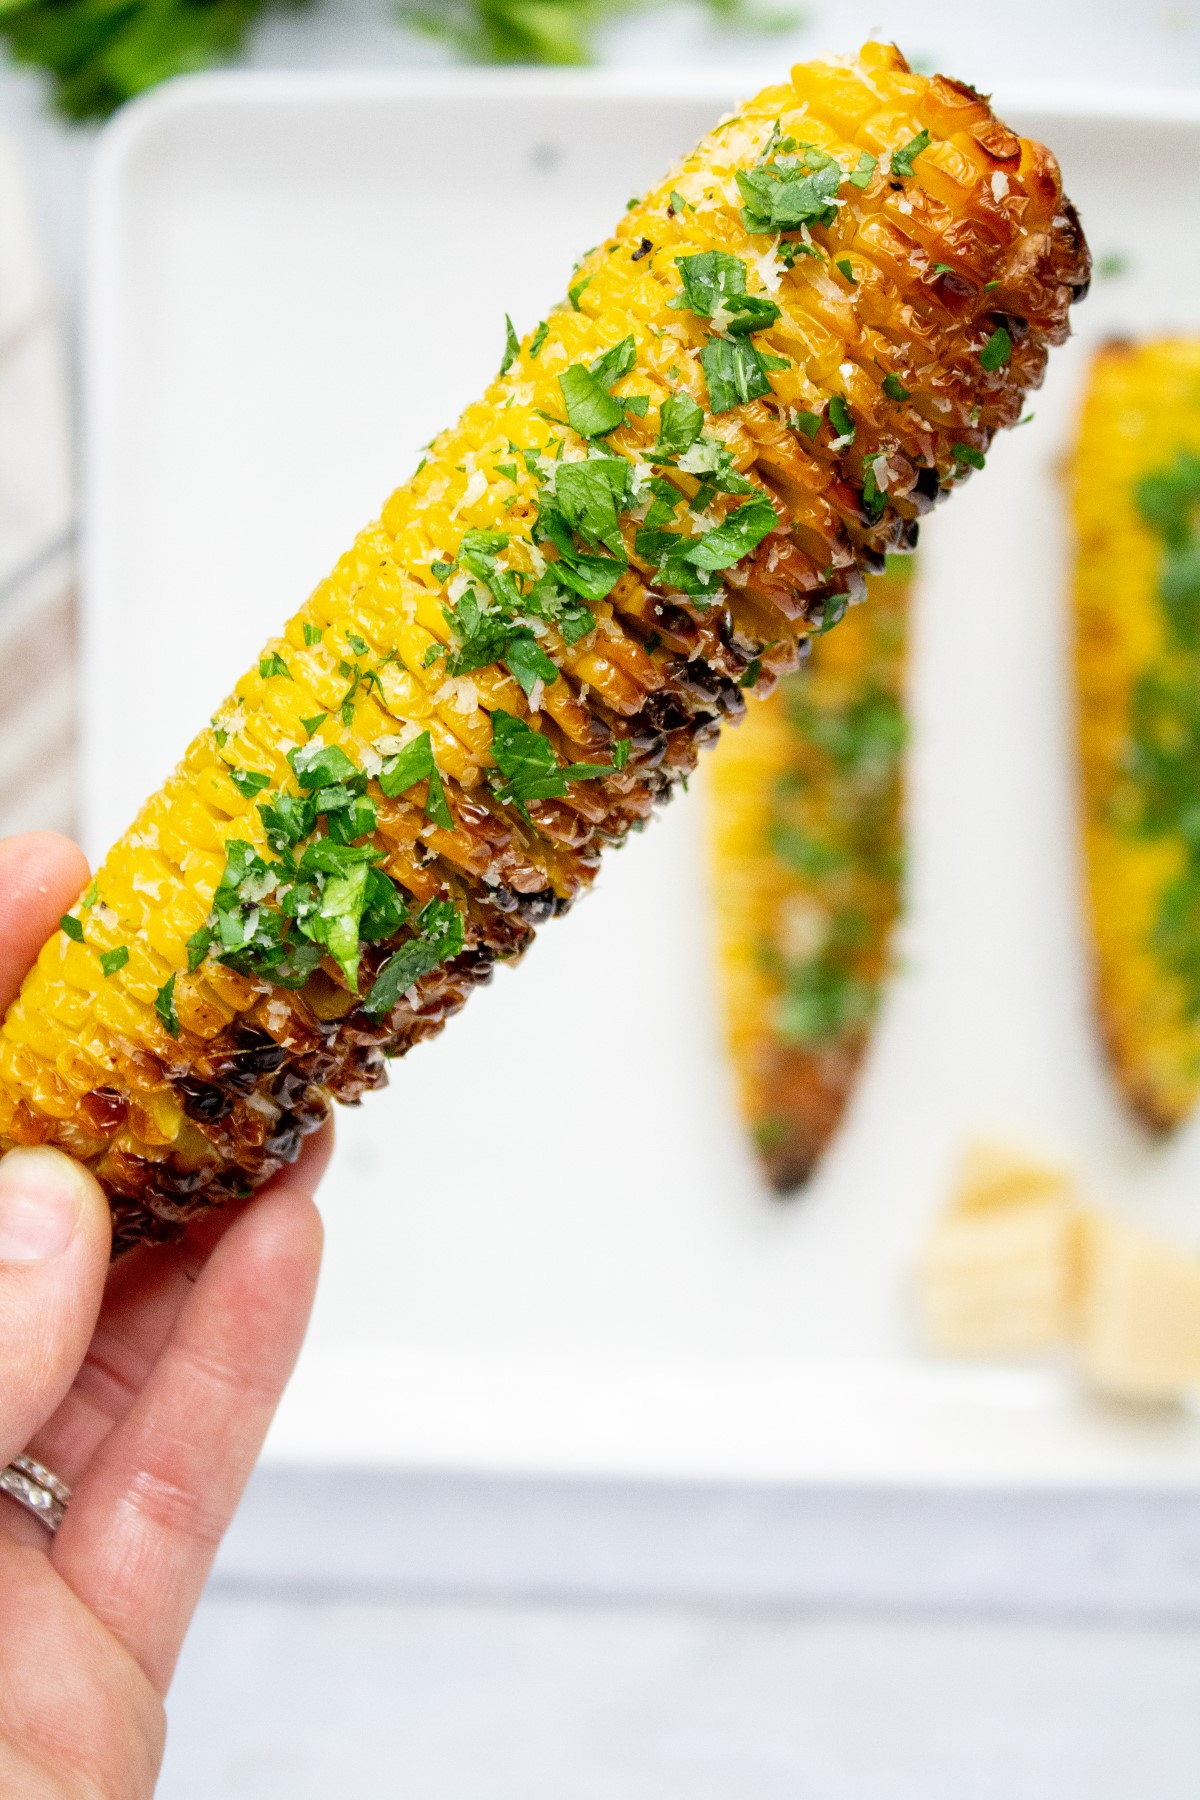 Grilled cob of corn covered in grated parmesan, chopped parsley and minced garlic held up in one hand.